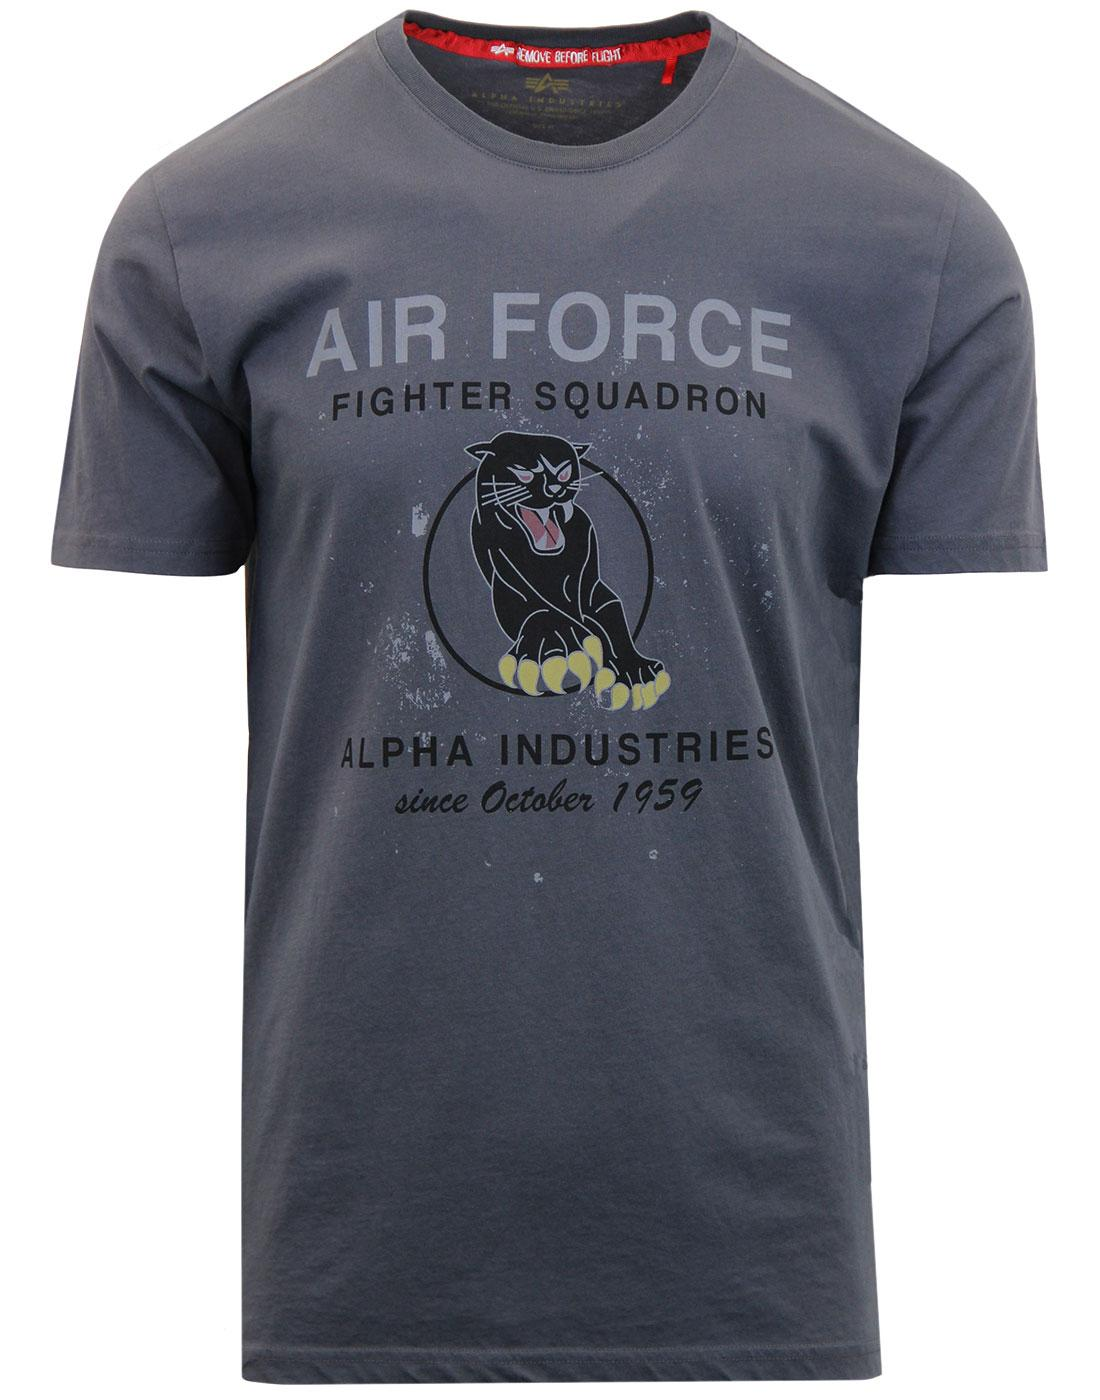 Black Panther ALPHA INDUSTRIES Air Force T-shirt